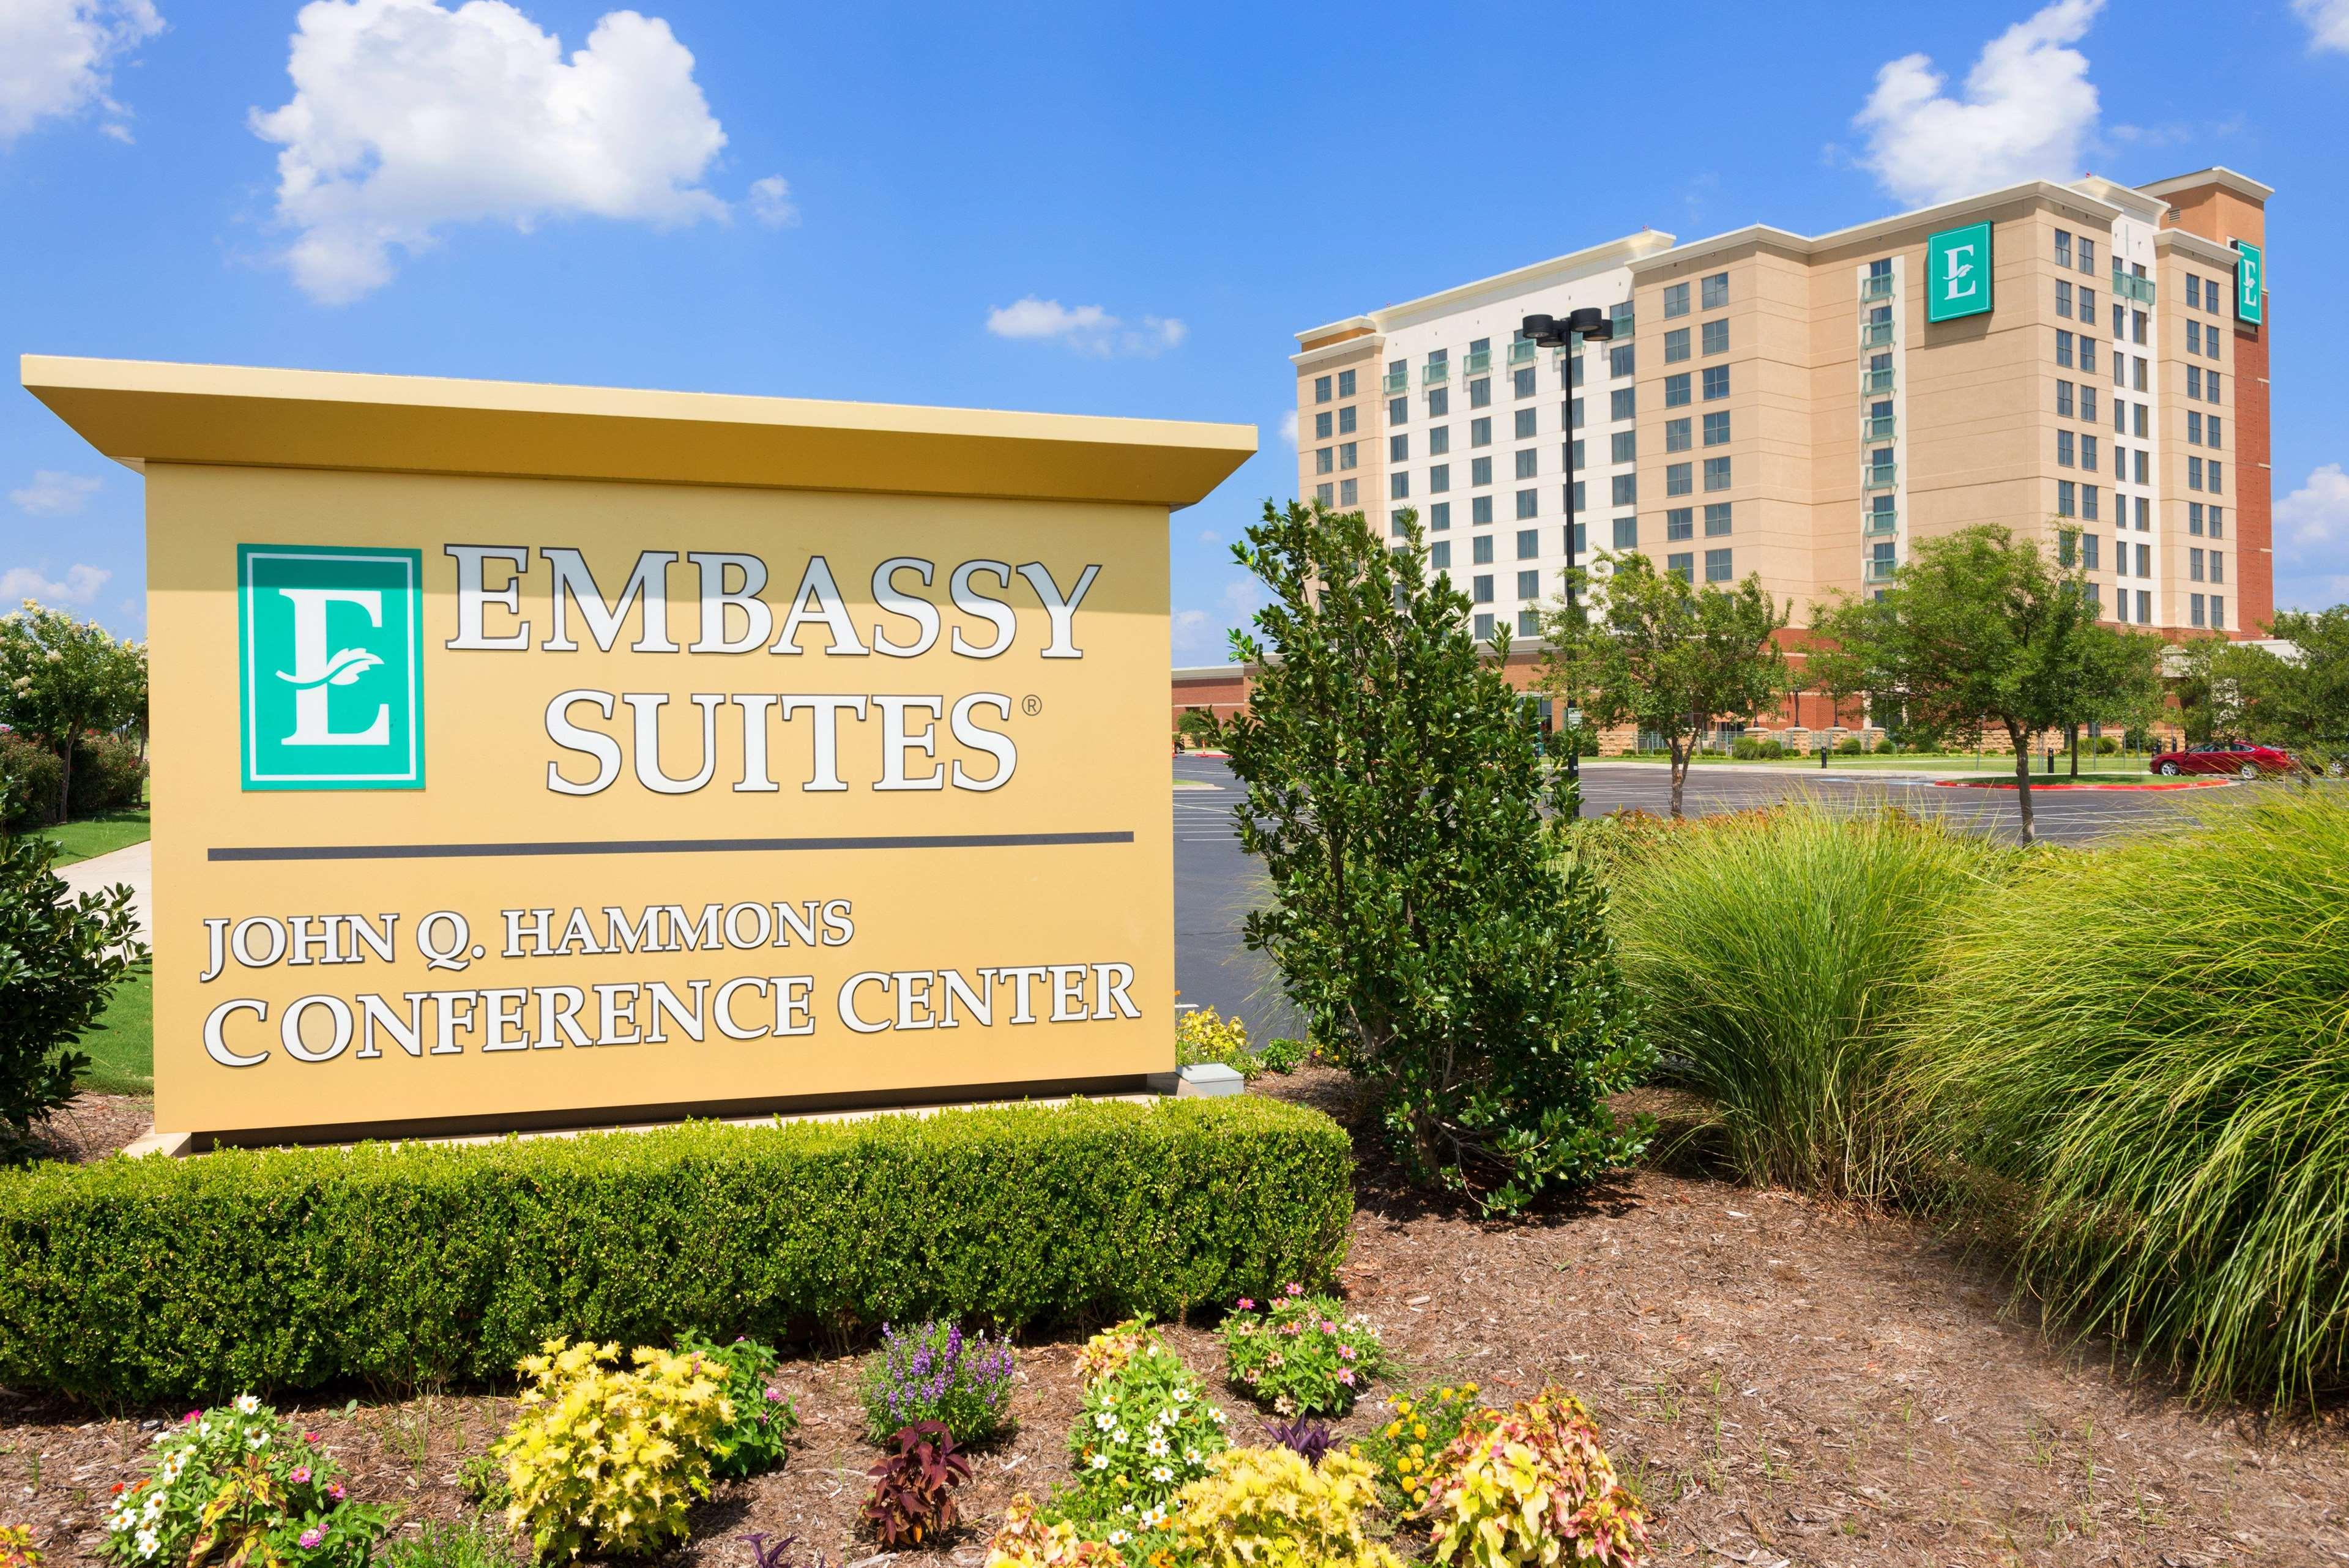 Embassy Suites Norman-Hotel&Conference Center, Cleveland